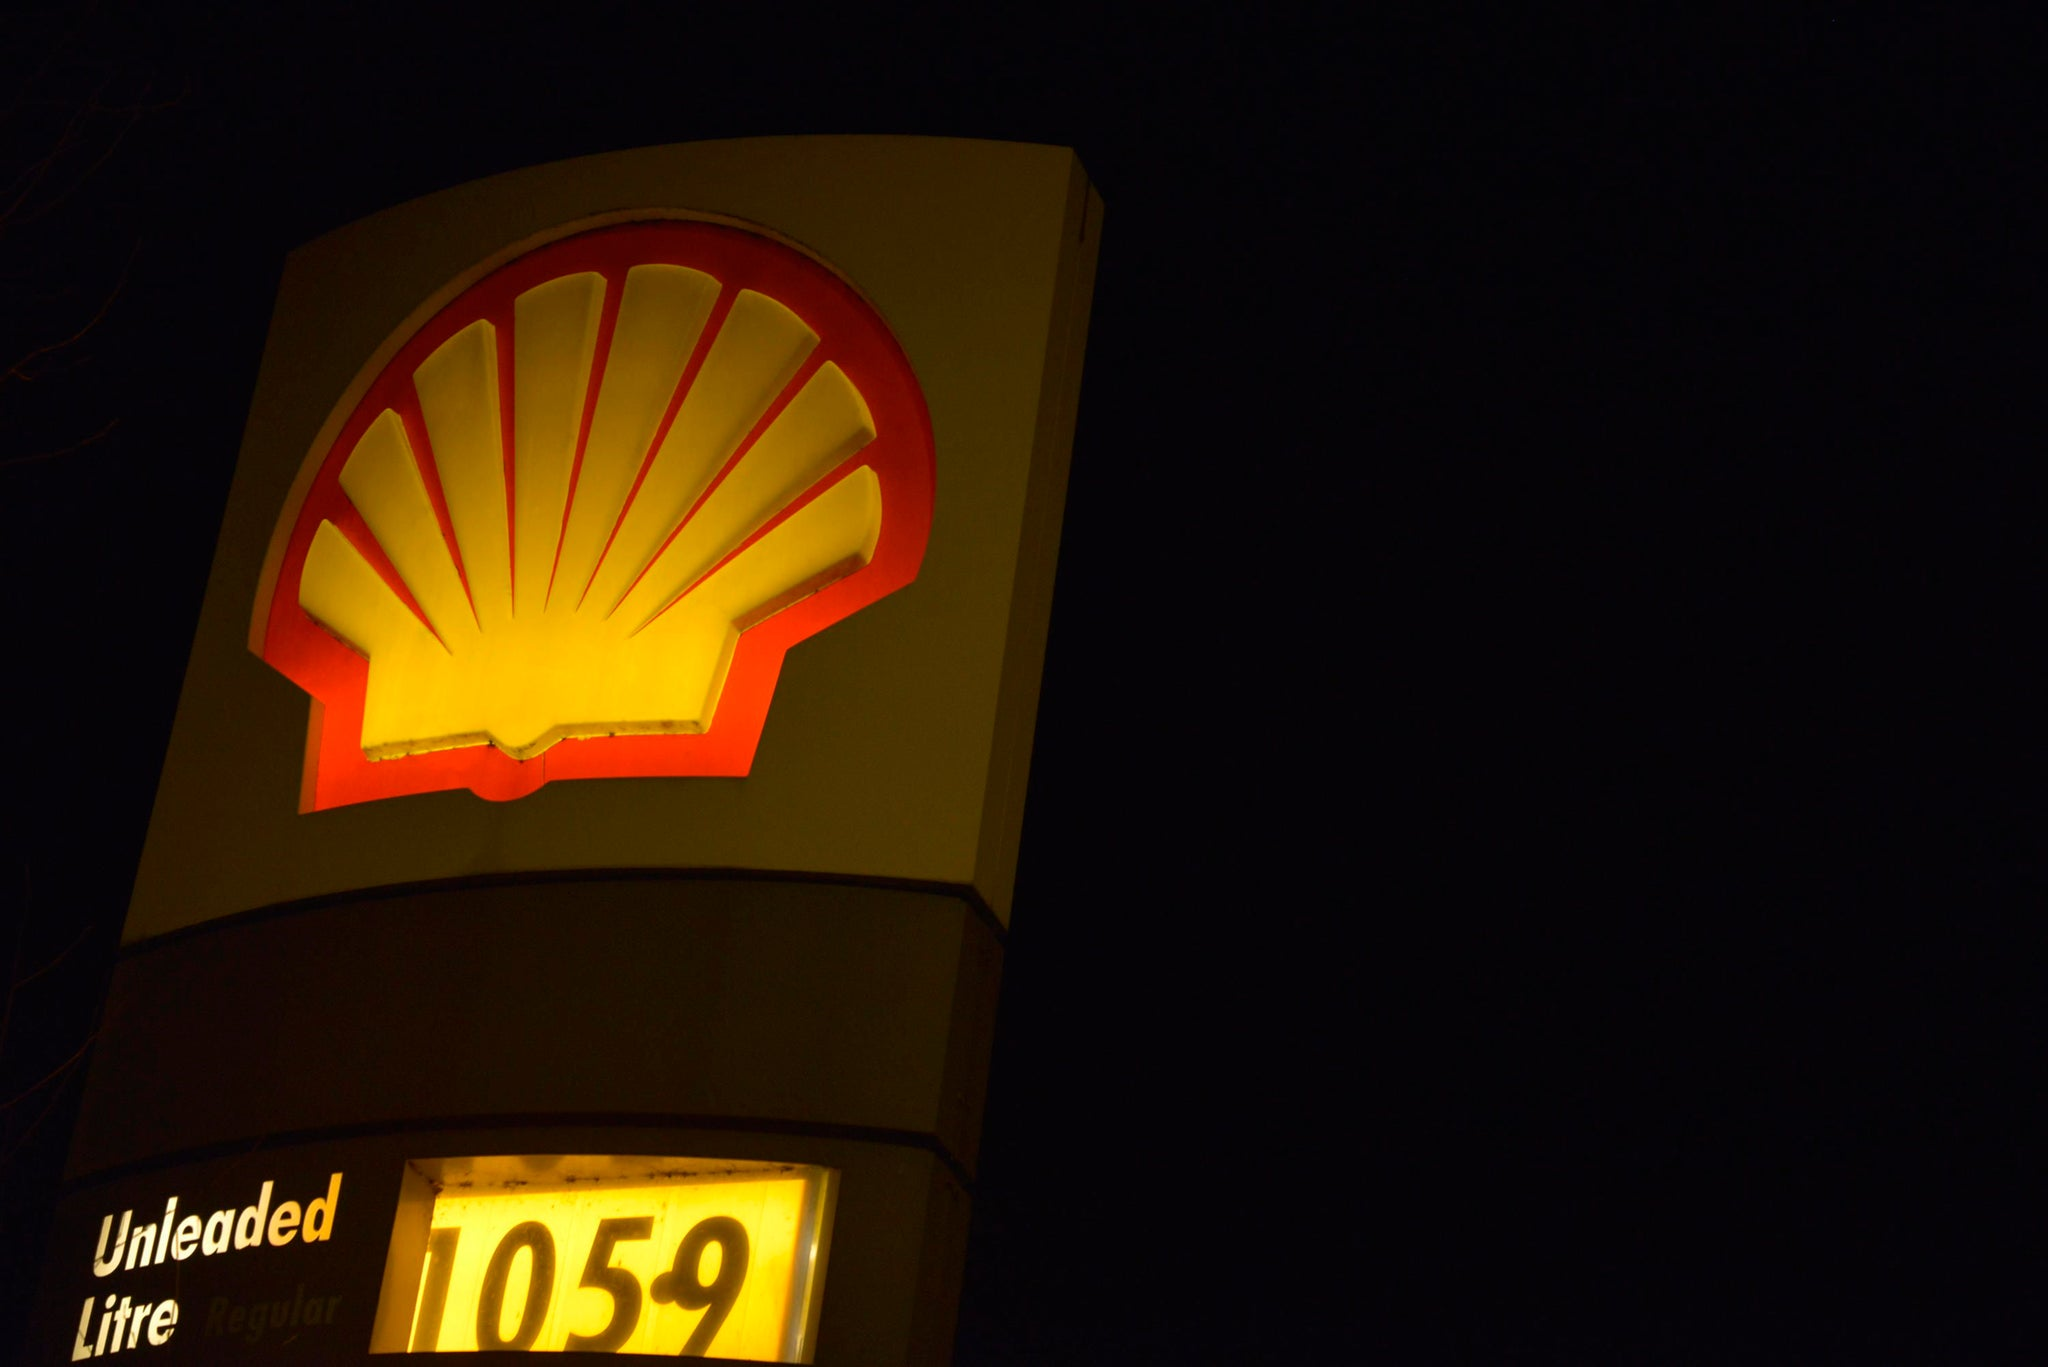 Oil giant Shell to Acquire Large Electric Charging Company